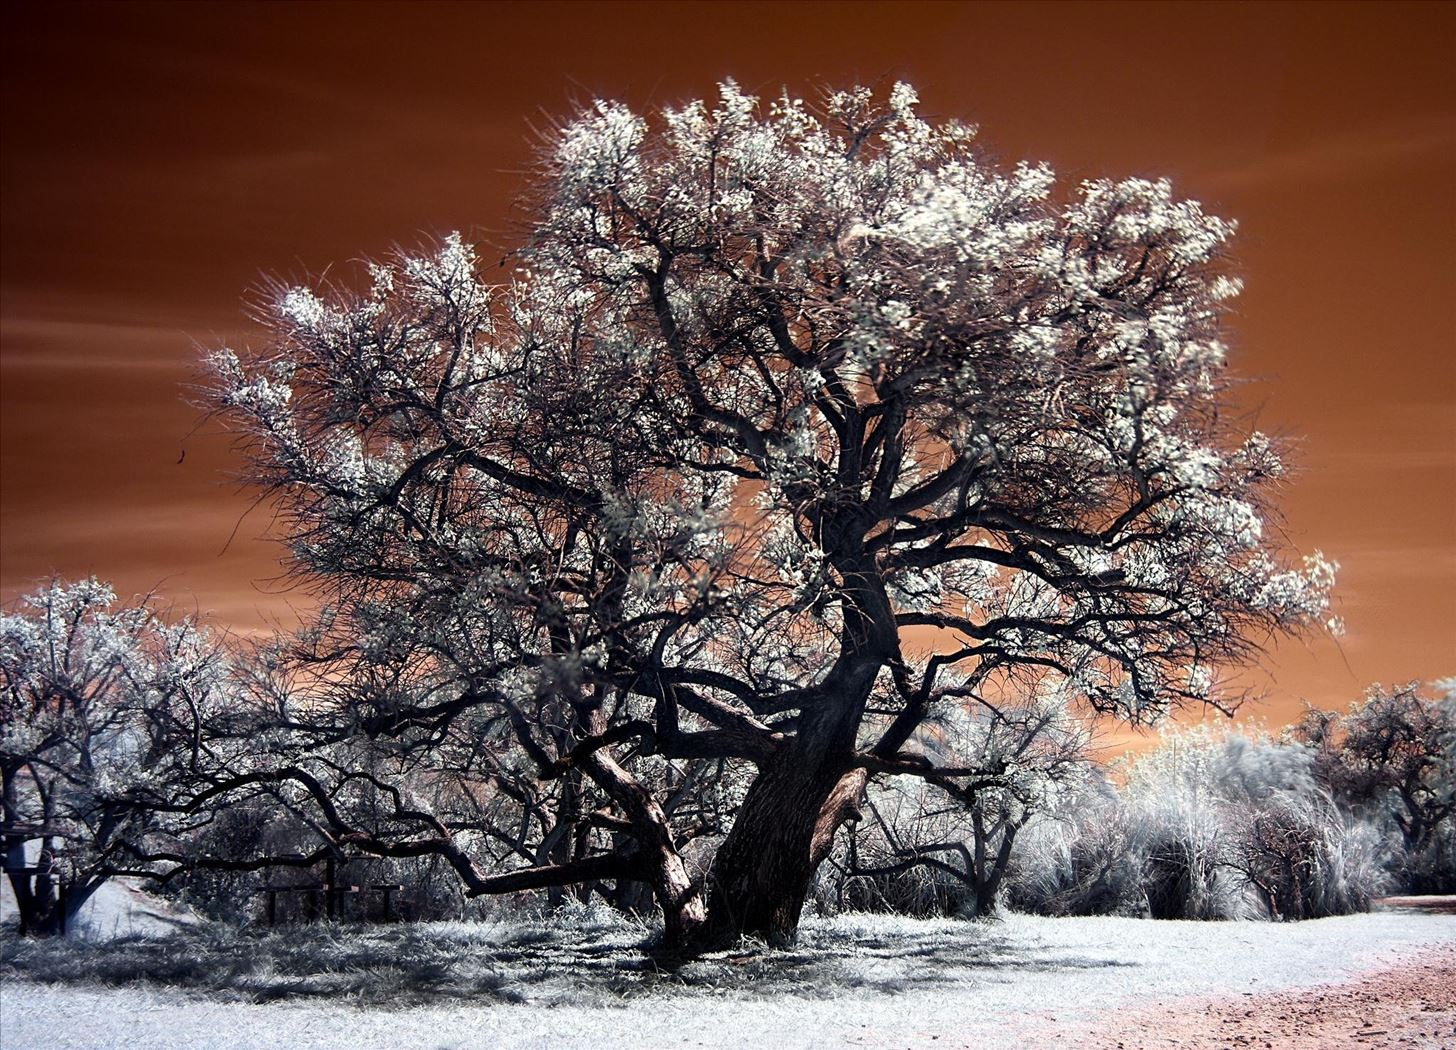 How to Find Hidden Blood Splatter Stains on Your Walls with This Infrared Photography Hack